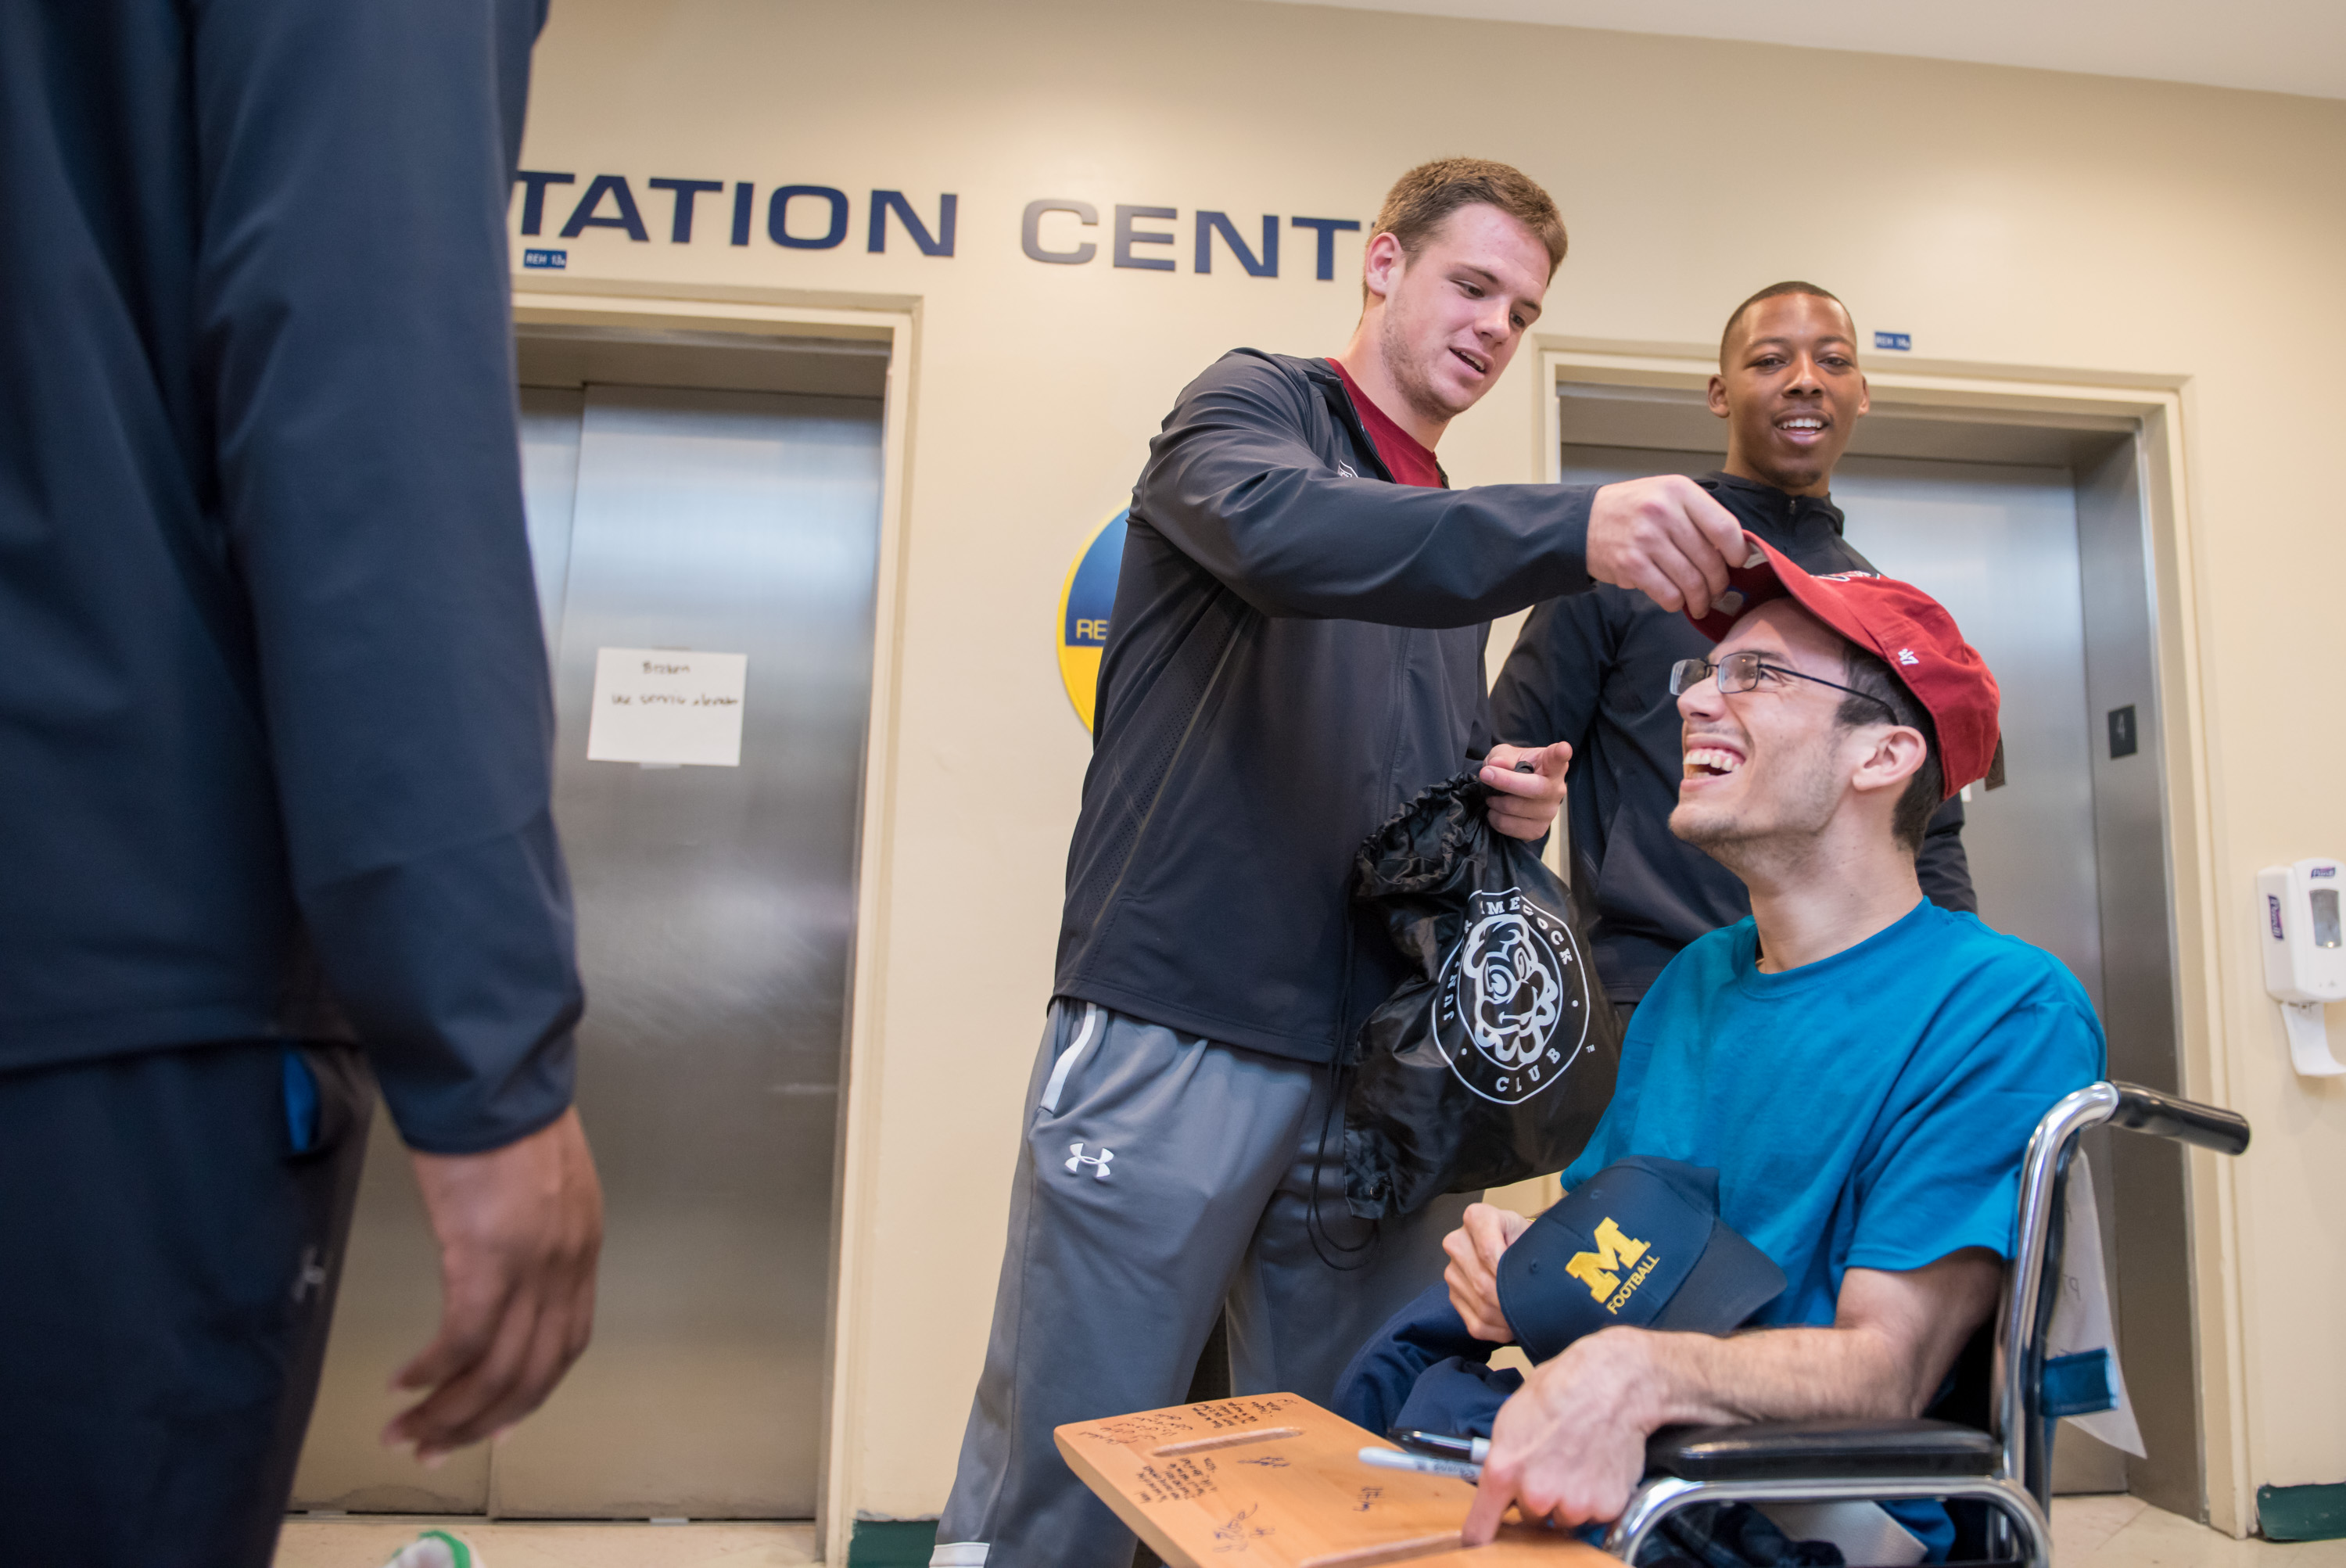 Outback bowl players visits male patient